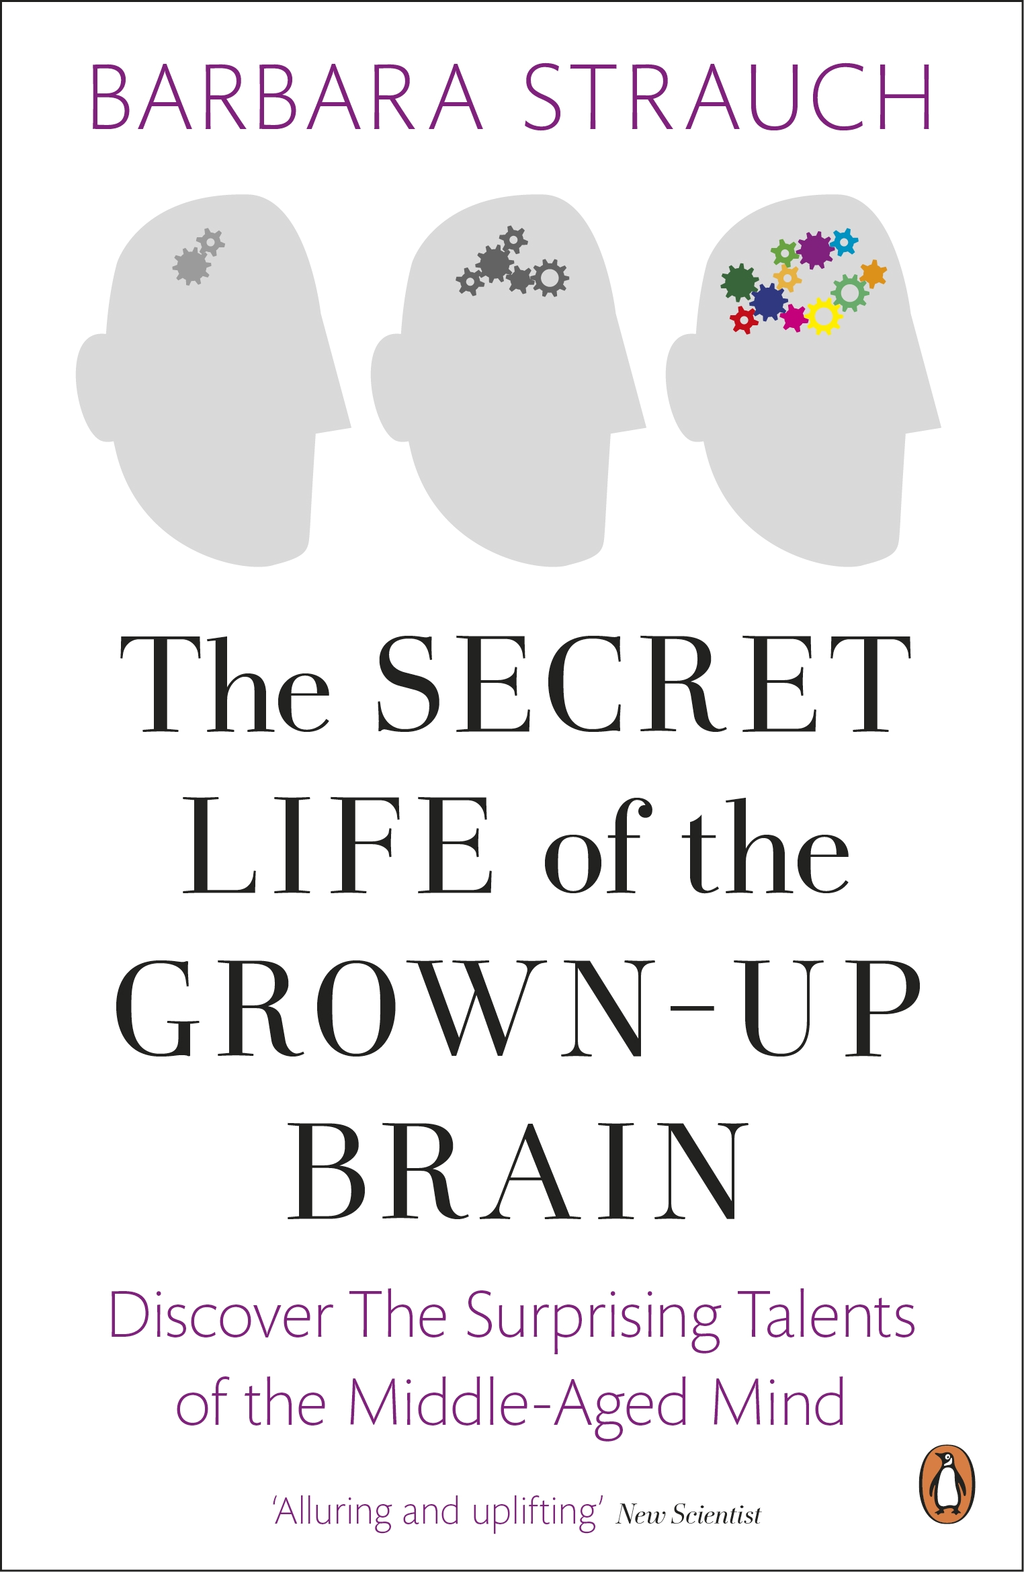 The Secret Life of the Grown-Up Brain Discover The Surprising Talents of the Middle-Aged Mind